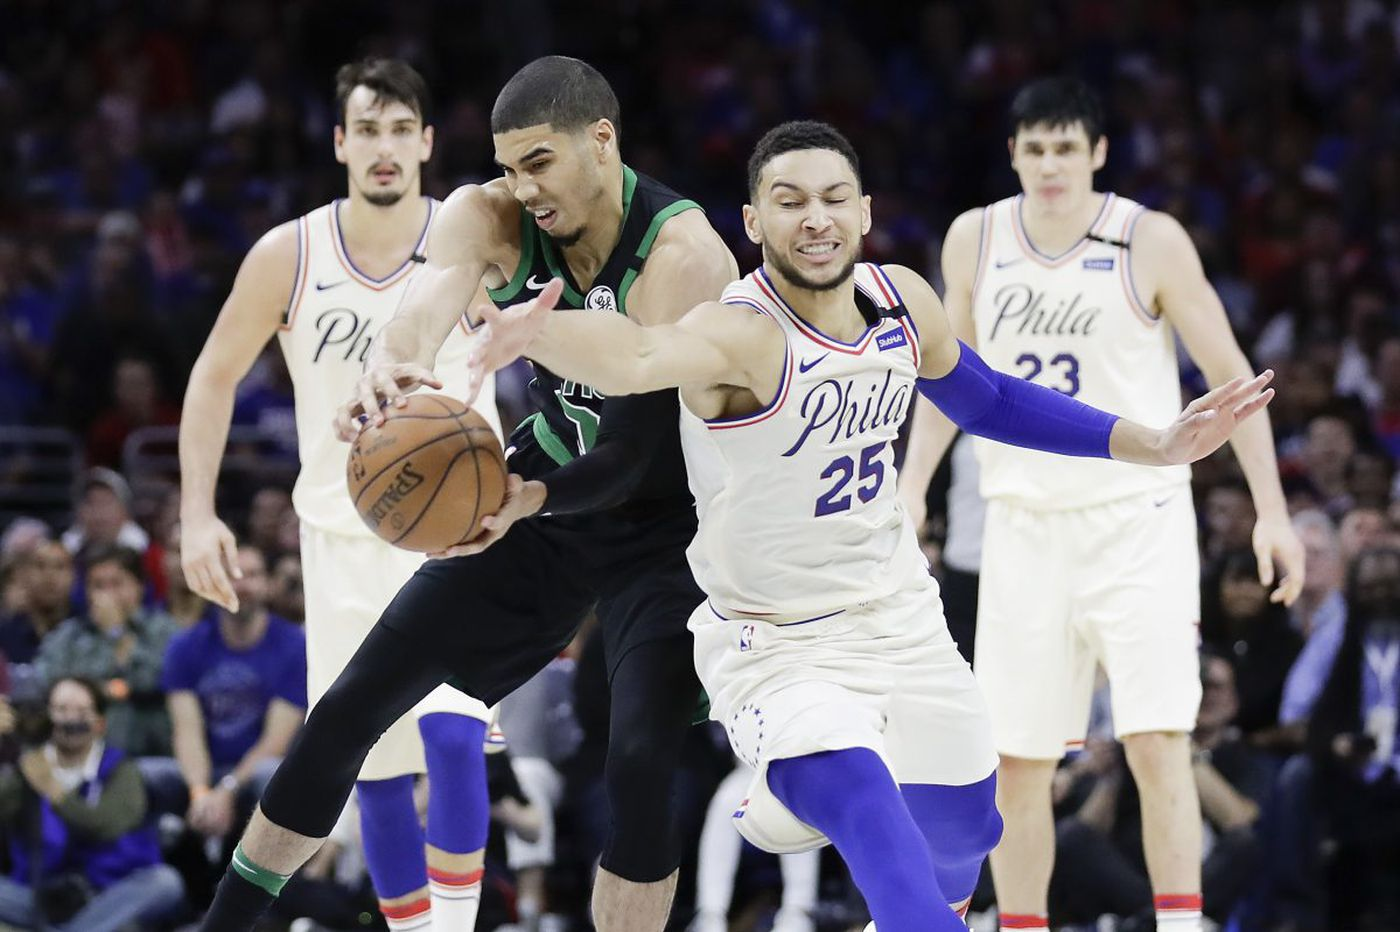 Sixers-Celtics observations, 'best' and 'worst' awards: Sixers' reality, Jayson Tatum's dominance and Robert Covington's struggles